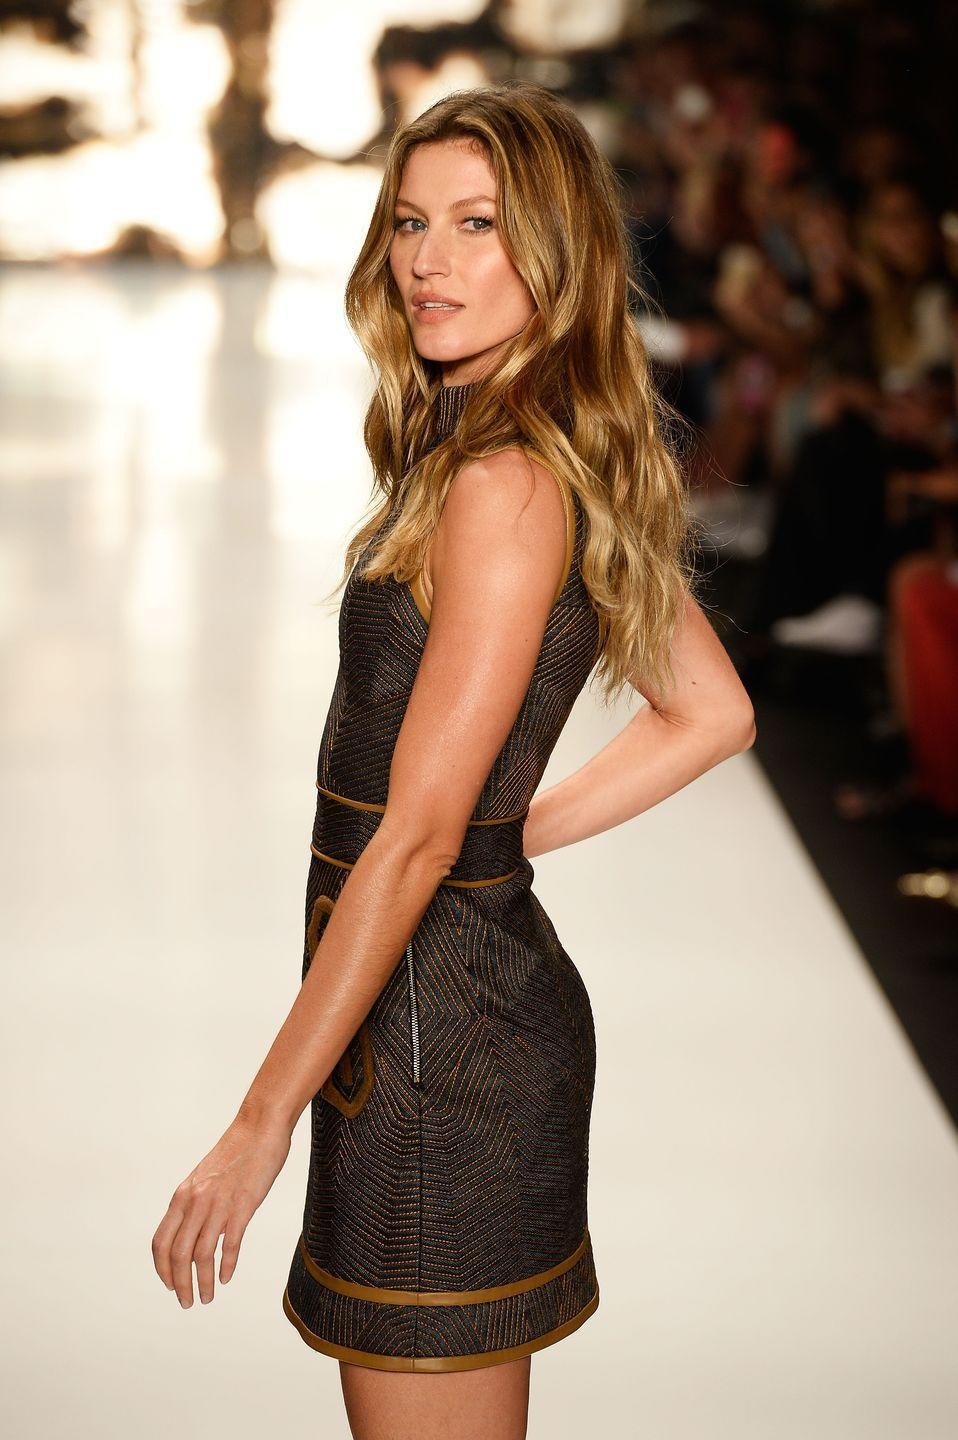 "<p><em>Forbes</em>'s longtime highest-paid model in the world was discovered while shopping in São Paolo, Brazil, <em><a href=""http://www.independent.co.uk/life-style/fashion/features/gisele-bndchen-business-model--it-takes-more-than-just-good-looks-to-get-to-the-top-8782676.html"" rel=""nofollow noopener"" target=""_blank"" data-ylk=""slk:The Independent"" class=""link rapid-noclick-resp"">The Independent</a> </em>reported<em>. </em>After walking her first runway at the age of 14, Bündchen went on to become the breakout supermodel of the late '90s and early 2000s, after making her big break at Alexander McQueen's spring 1998 show. </p><p>She has since dabbled in acting, appearing in movies like <em>The Devil Wears Prada</em> and <em>Taxi</em><em>,</em> and most recently wrote a memoir, <em><a href=""https://www.amazon.com/dp/052553864X/?tag=syn-yahoo-20&ascsubtag=%5Bartid%7C10063.g.35367253%5Bsrc%7Cyahoo-us"" rel=""nofollow noopener"" target=""_blank"" data-ylk=""slk:Lessons: My Path to a Meaningful Life"" class=""link rapid-noclick-resp"">Lessons: My Path to a Meaningful Life</a>.</em><br></p>"